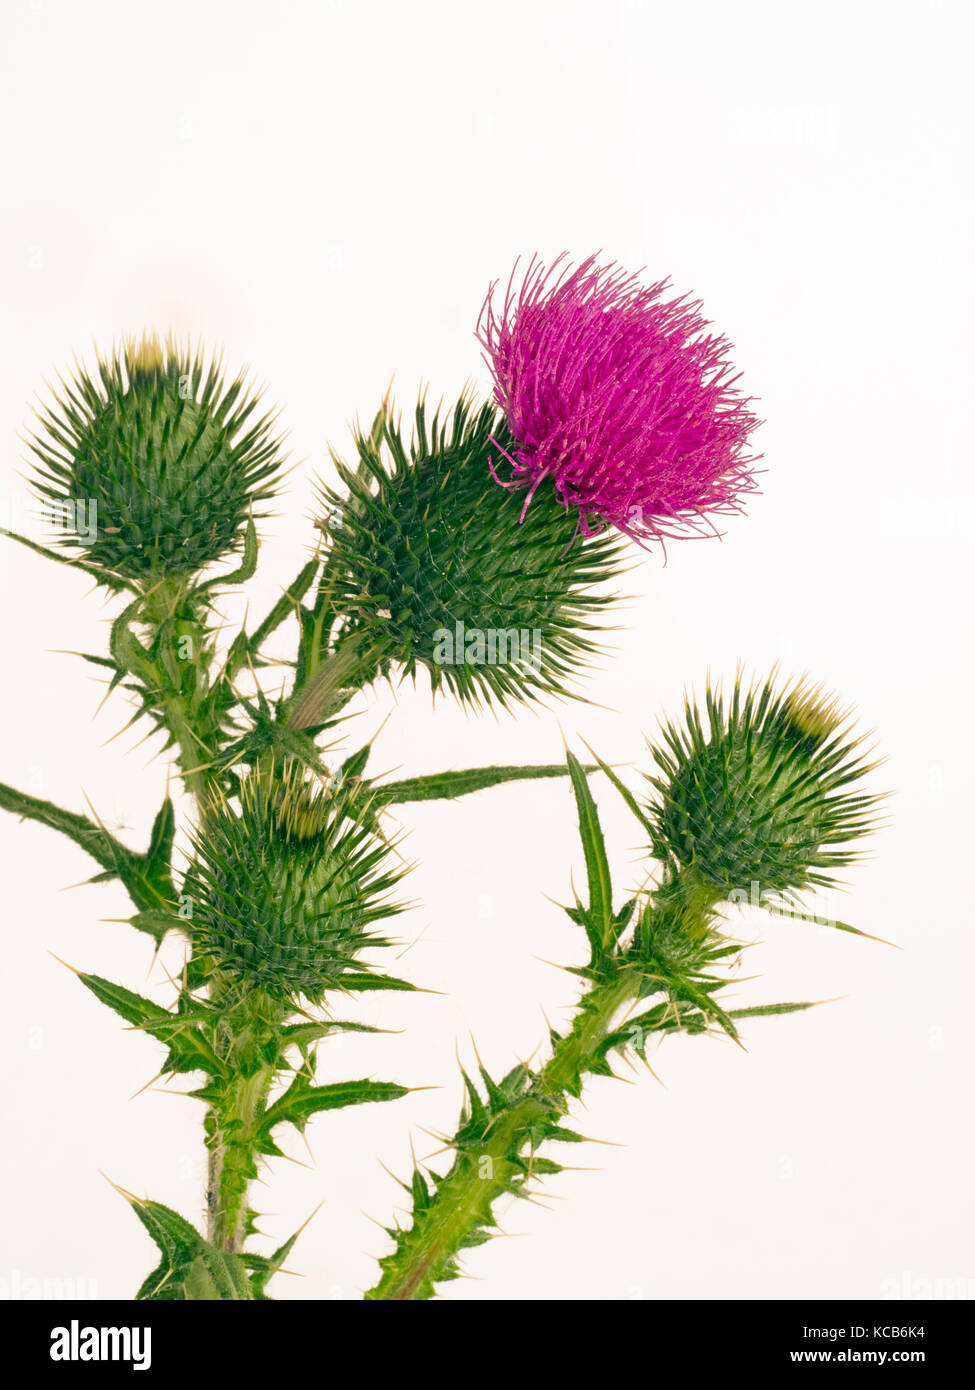 Spear thistle Cirsium vulgare or bull thistle, or common thistle on cut-out background Stock Photo